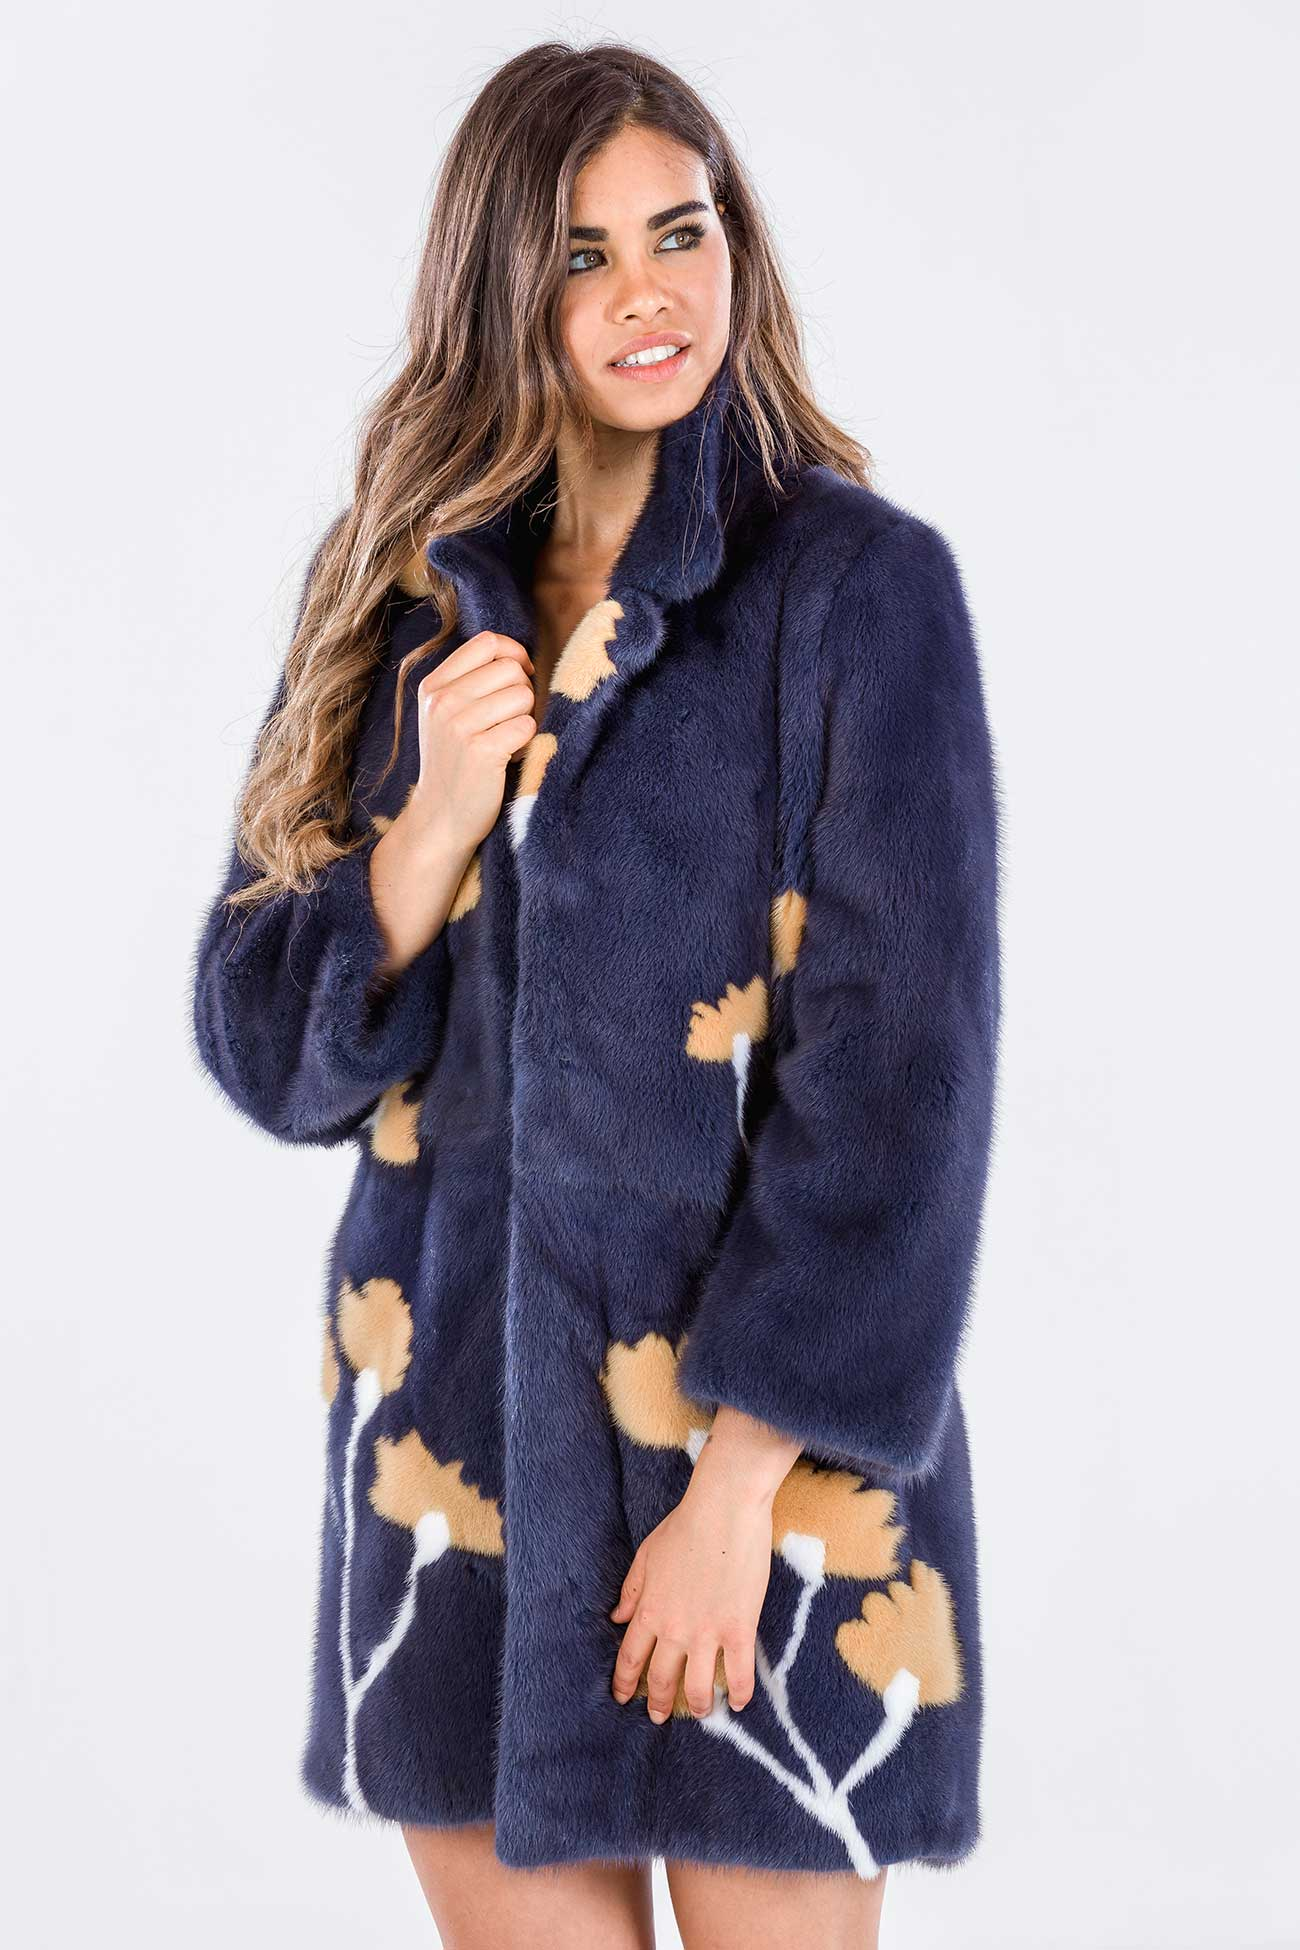 Mink coat aegean blue with floral inserts